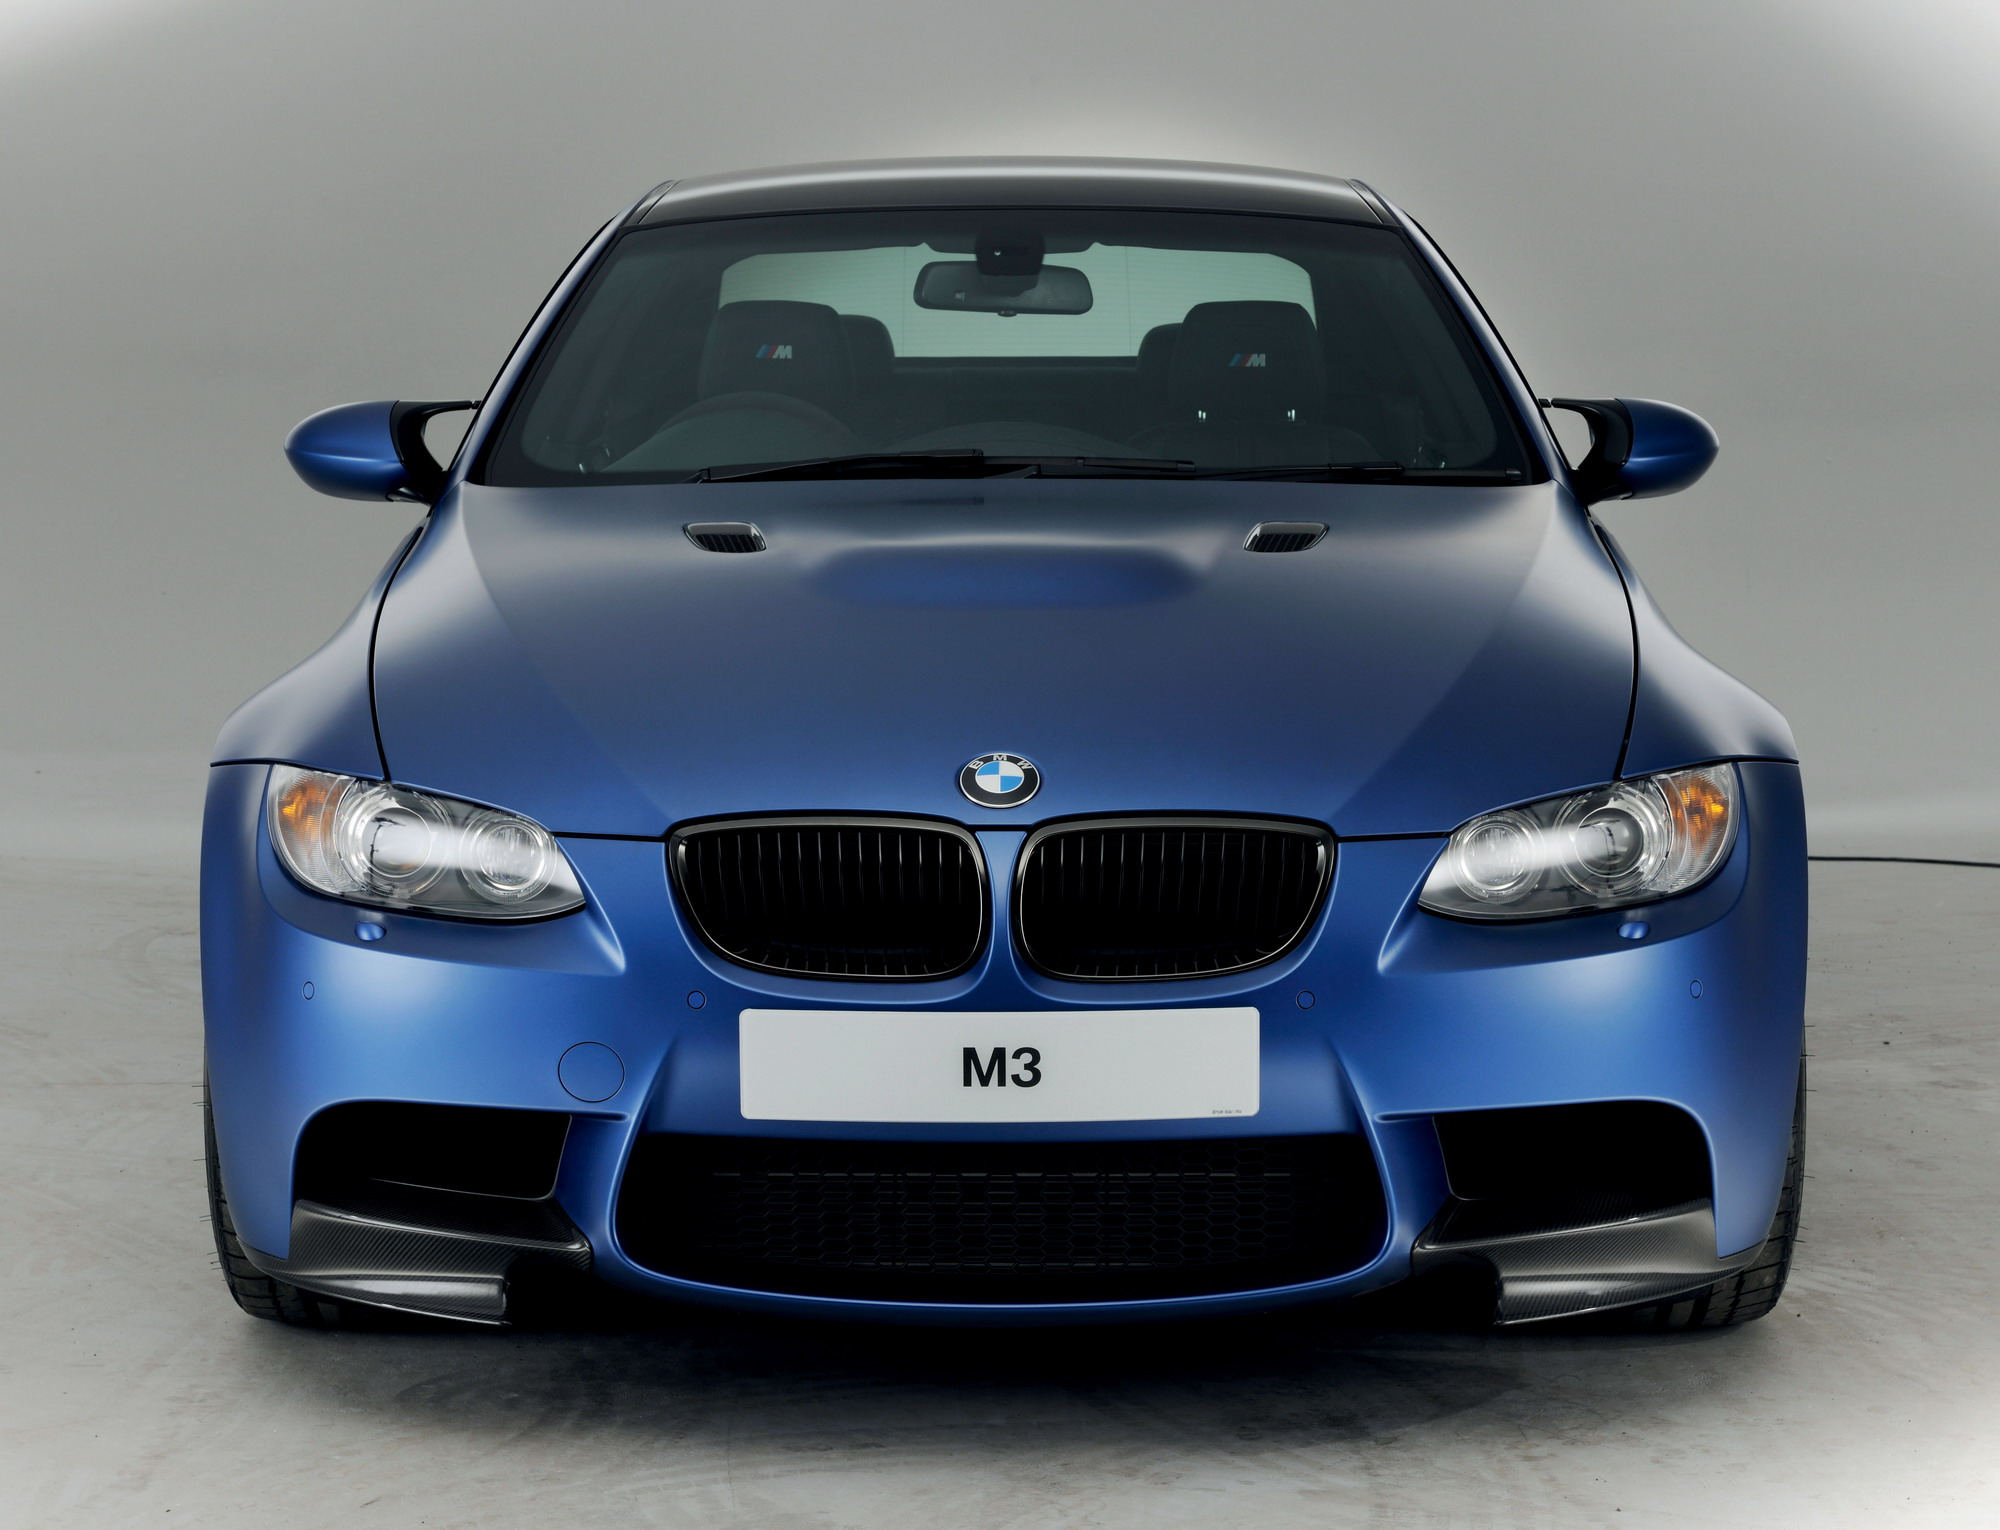 2013 bmw m3 m performance edition gallery 458084 top speed. Black Bedroom Furniture Sets. Home Design Ideas